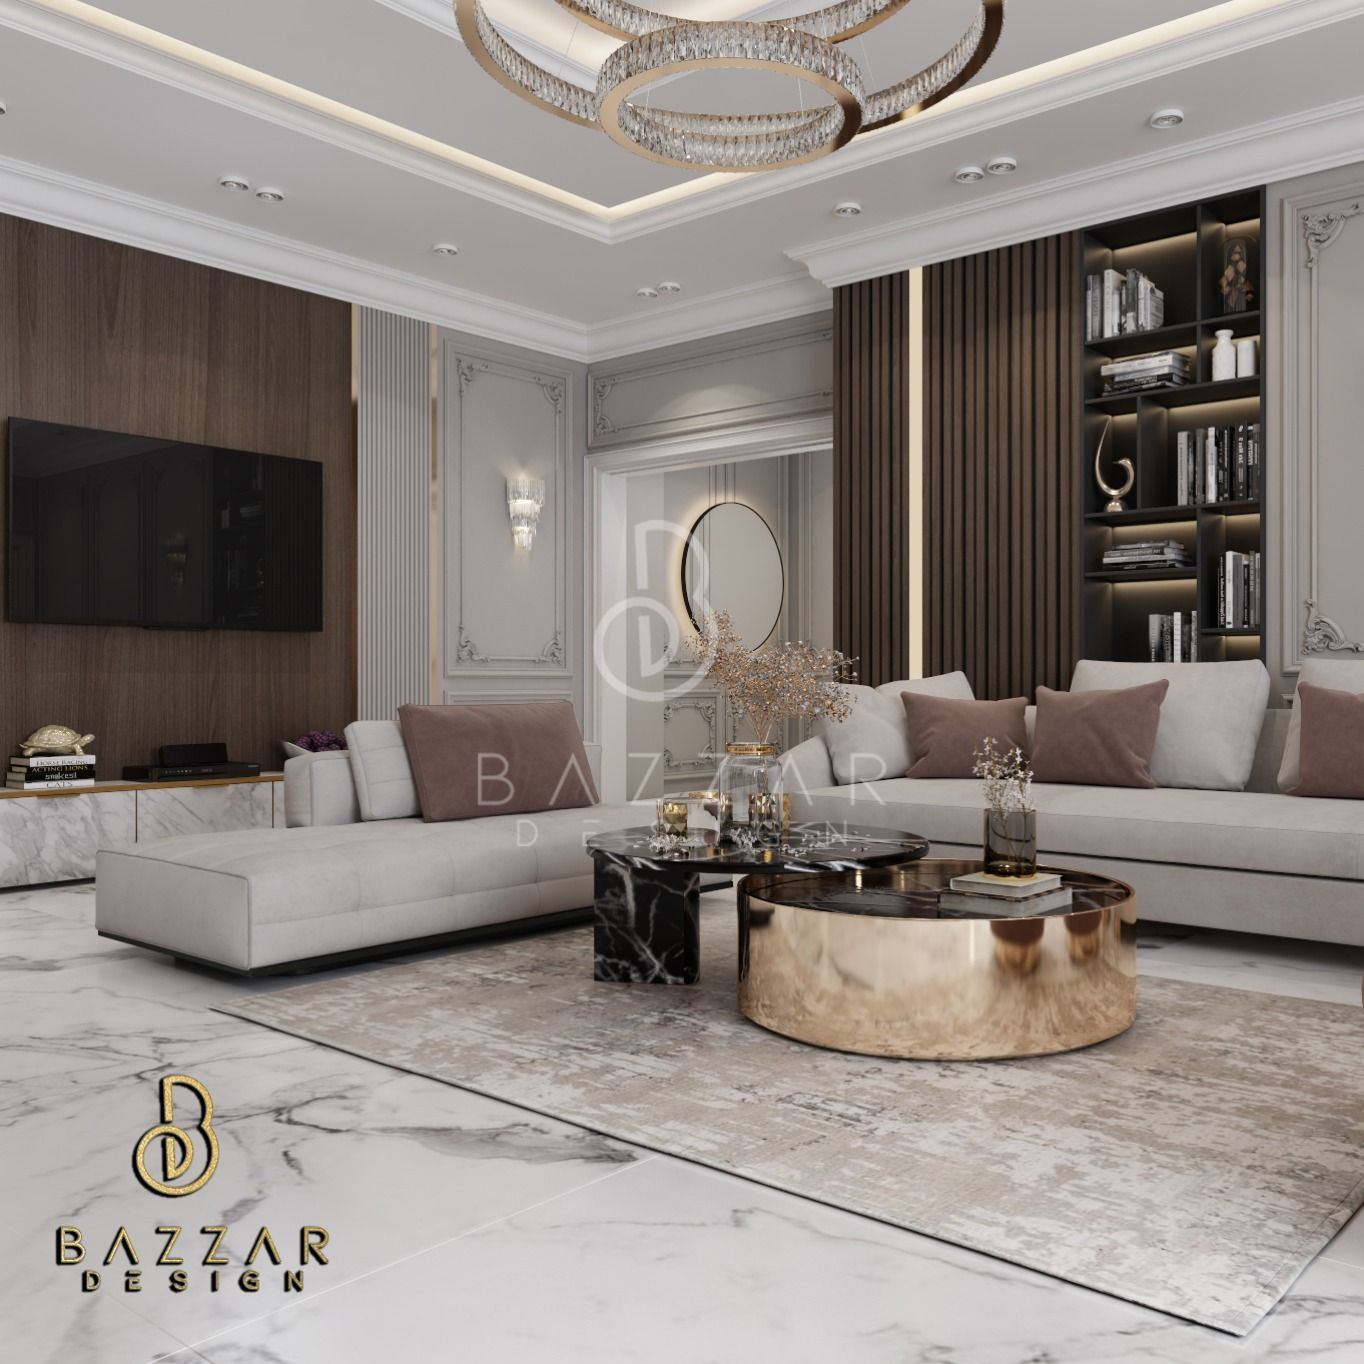 New Interior Decor Trends That Will Be Huge In 2020 Trending Decor Showroom Decor Room Design